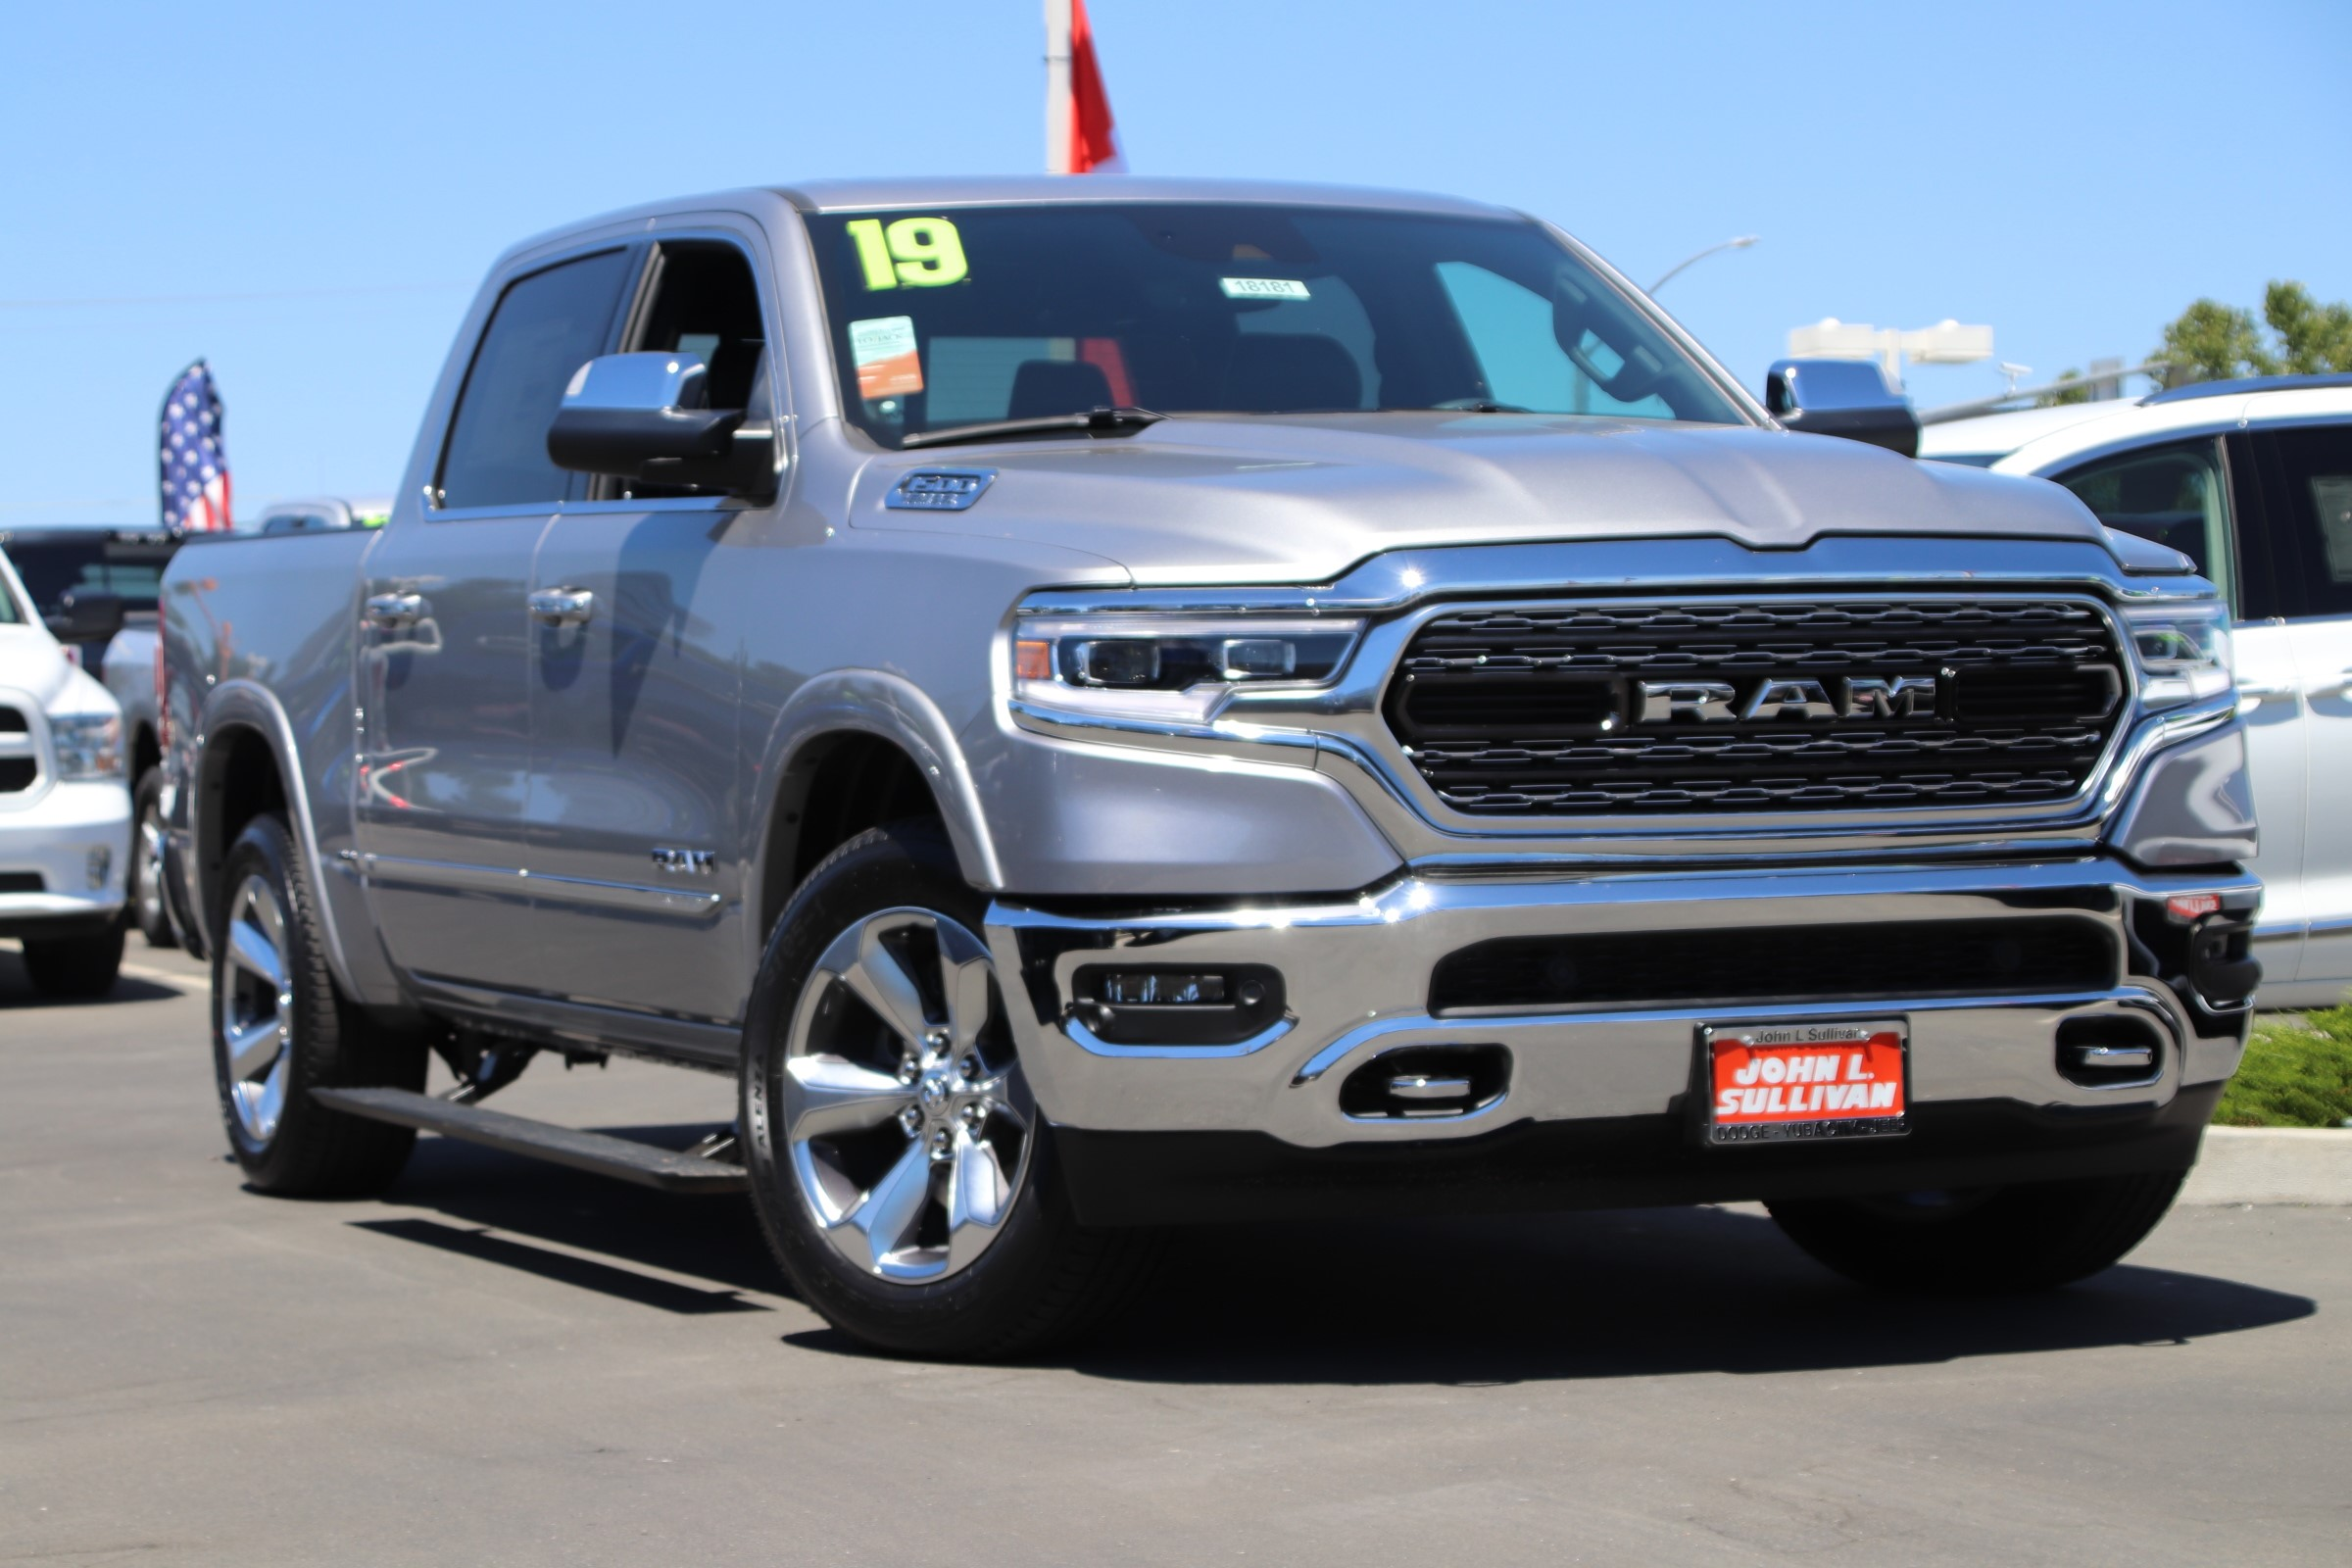 New 2019 Ram 1500 Limited 4d Crew Cab In Yuba City 00018181 John 2013 Dodge 5500 Fuel Filter Location